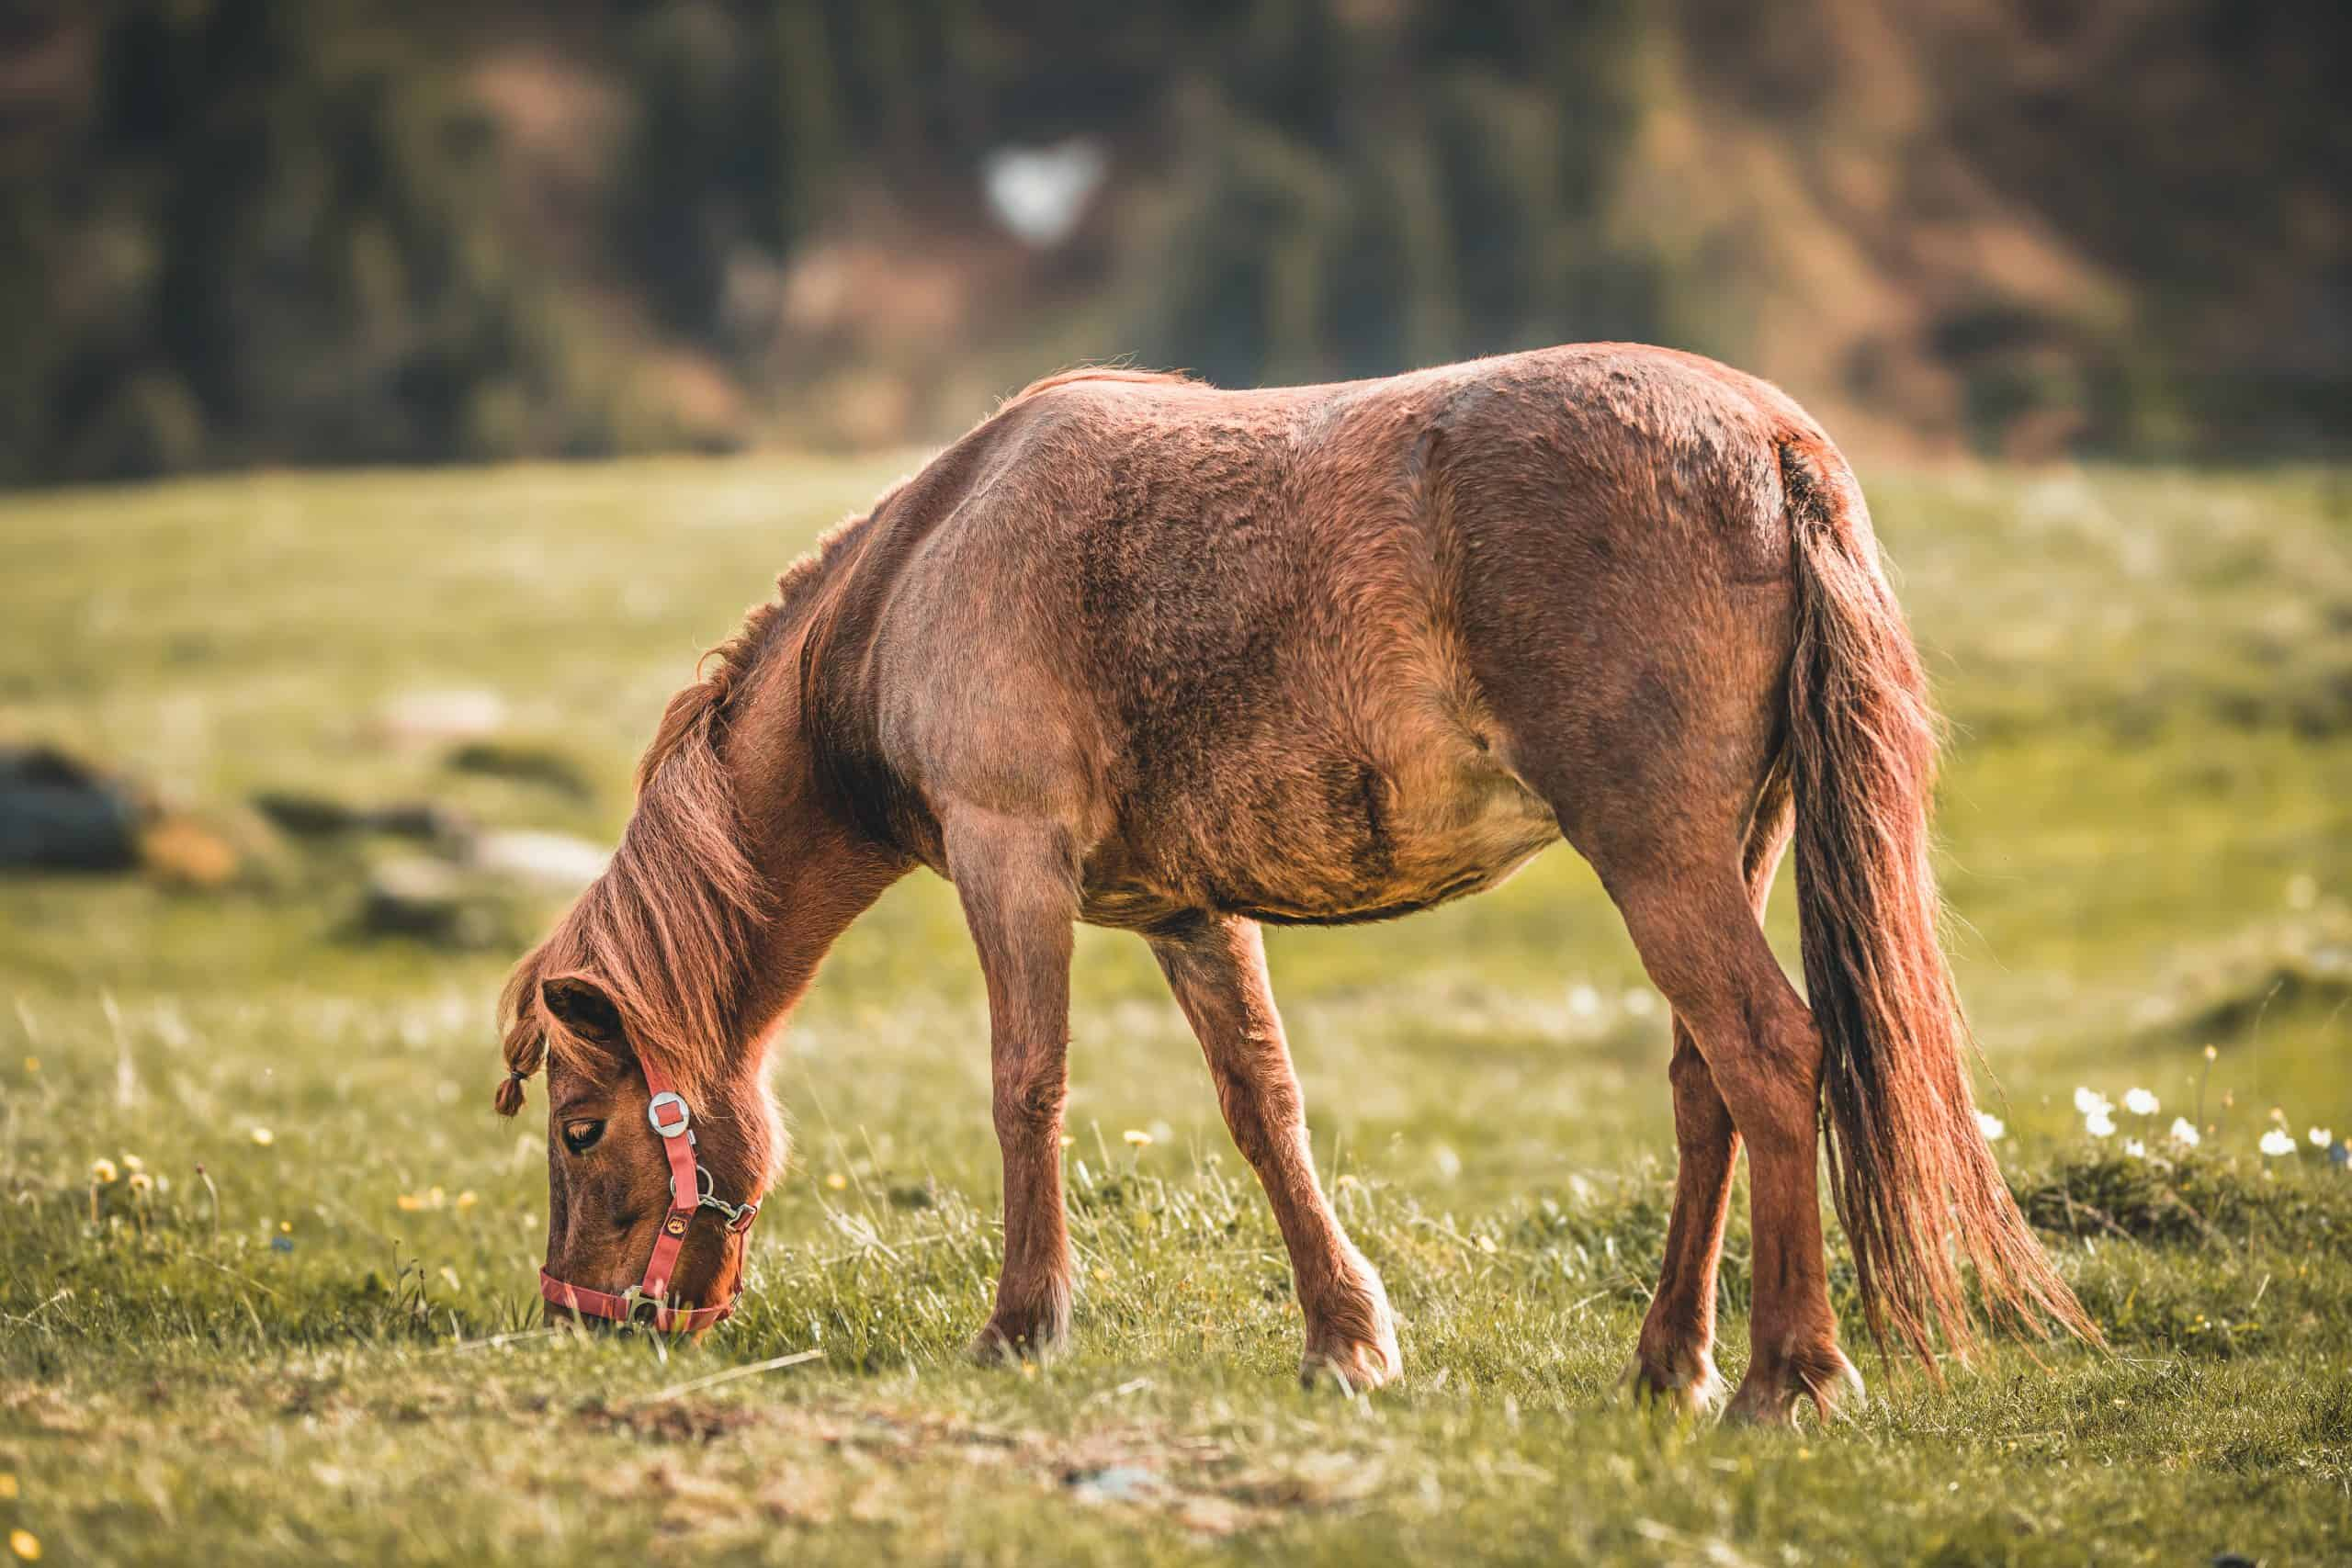 symptoms of ulcers in horses grazing